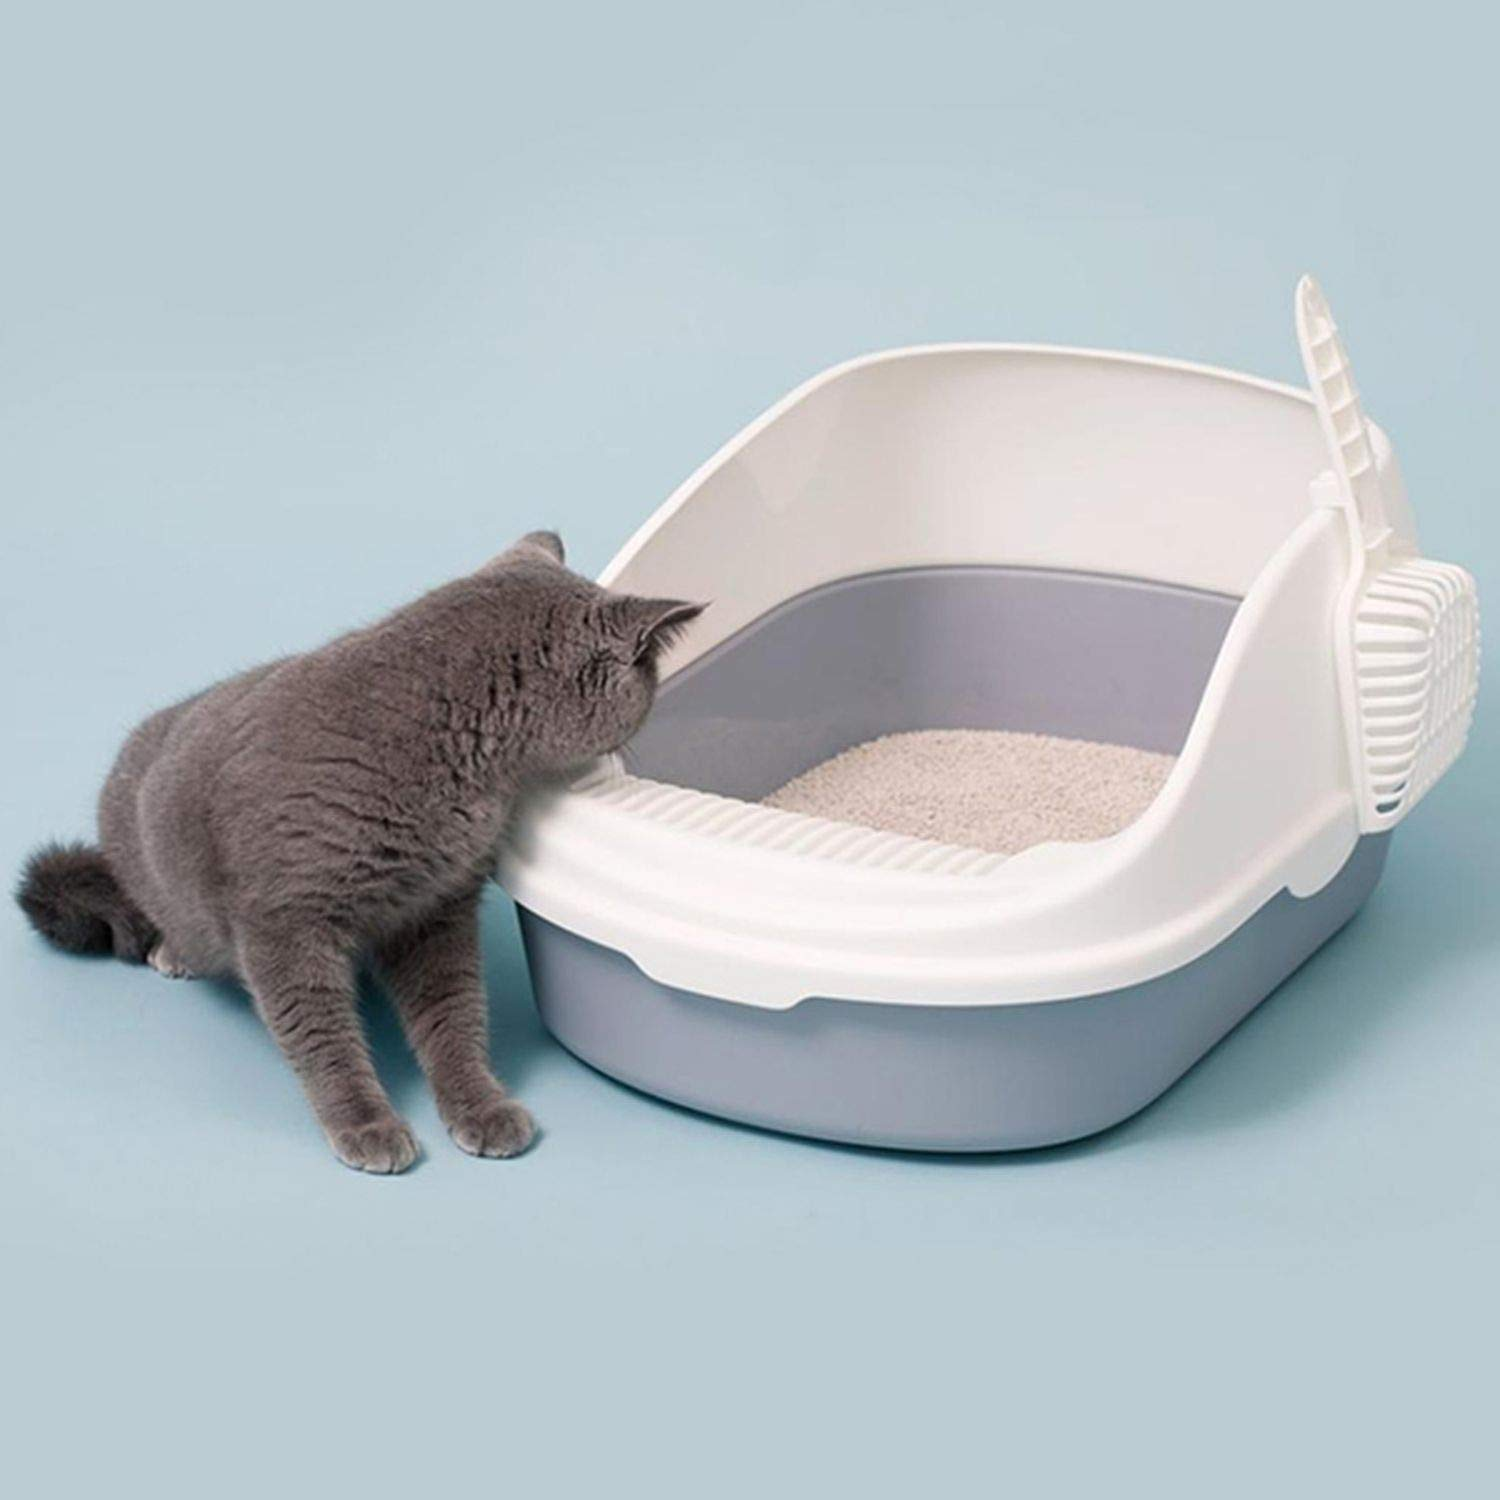 juan 9 Portable Cat Litter Bowl Toilet Bedpans Large Middle Size Cat Excrement Training Sand Litter Box with Scoop for Pets,Crystal Cream,Average Code by juan 9